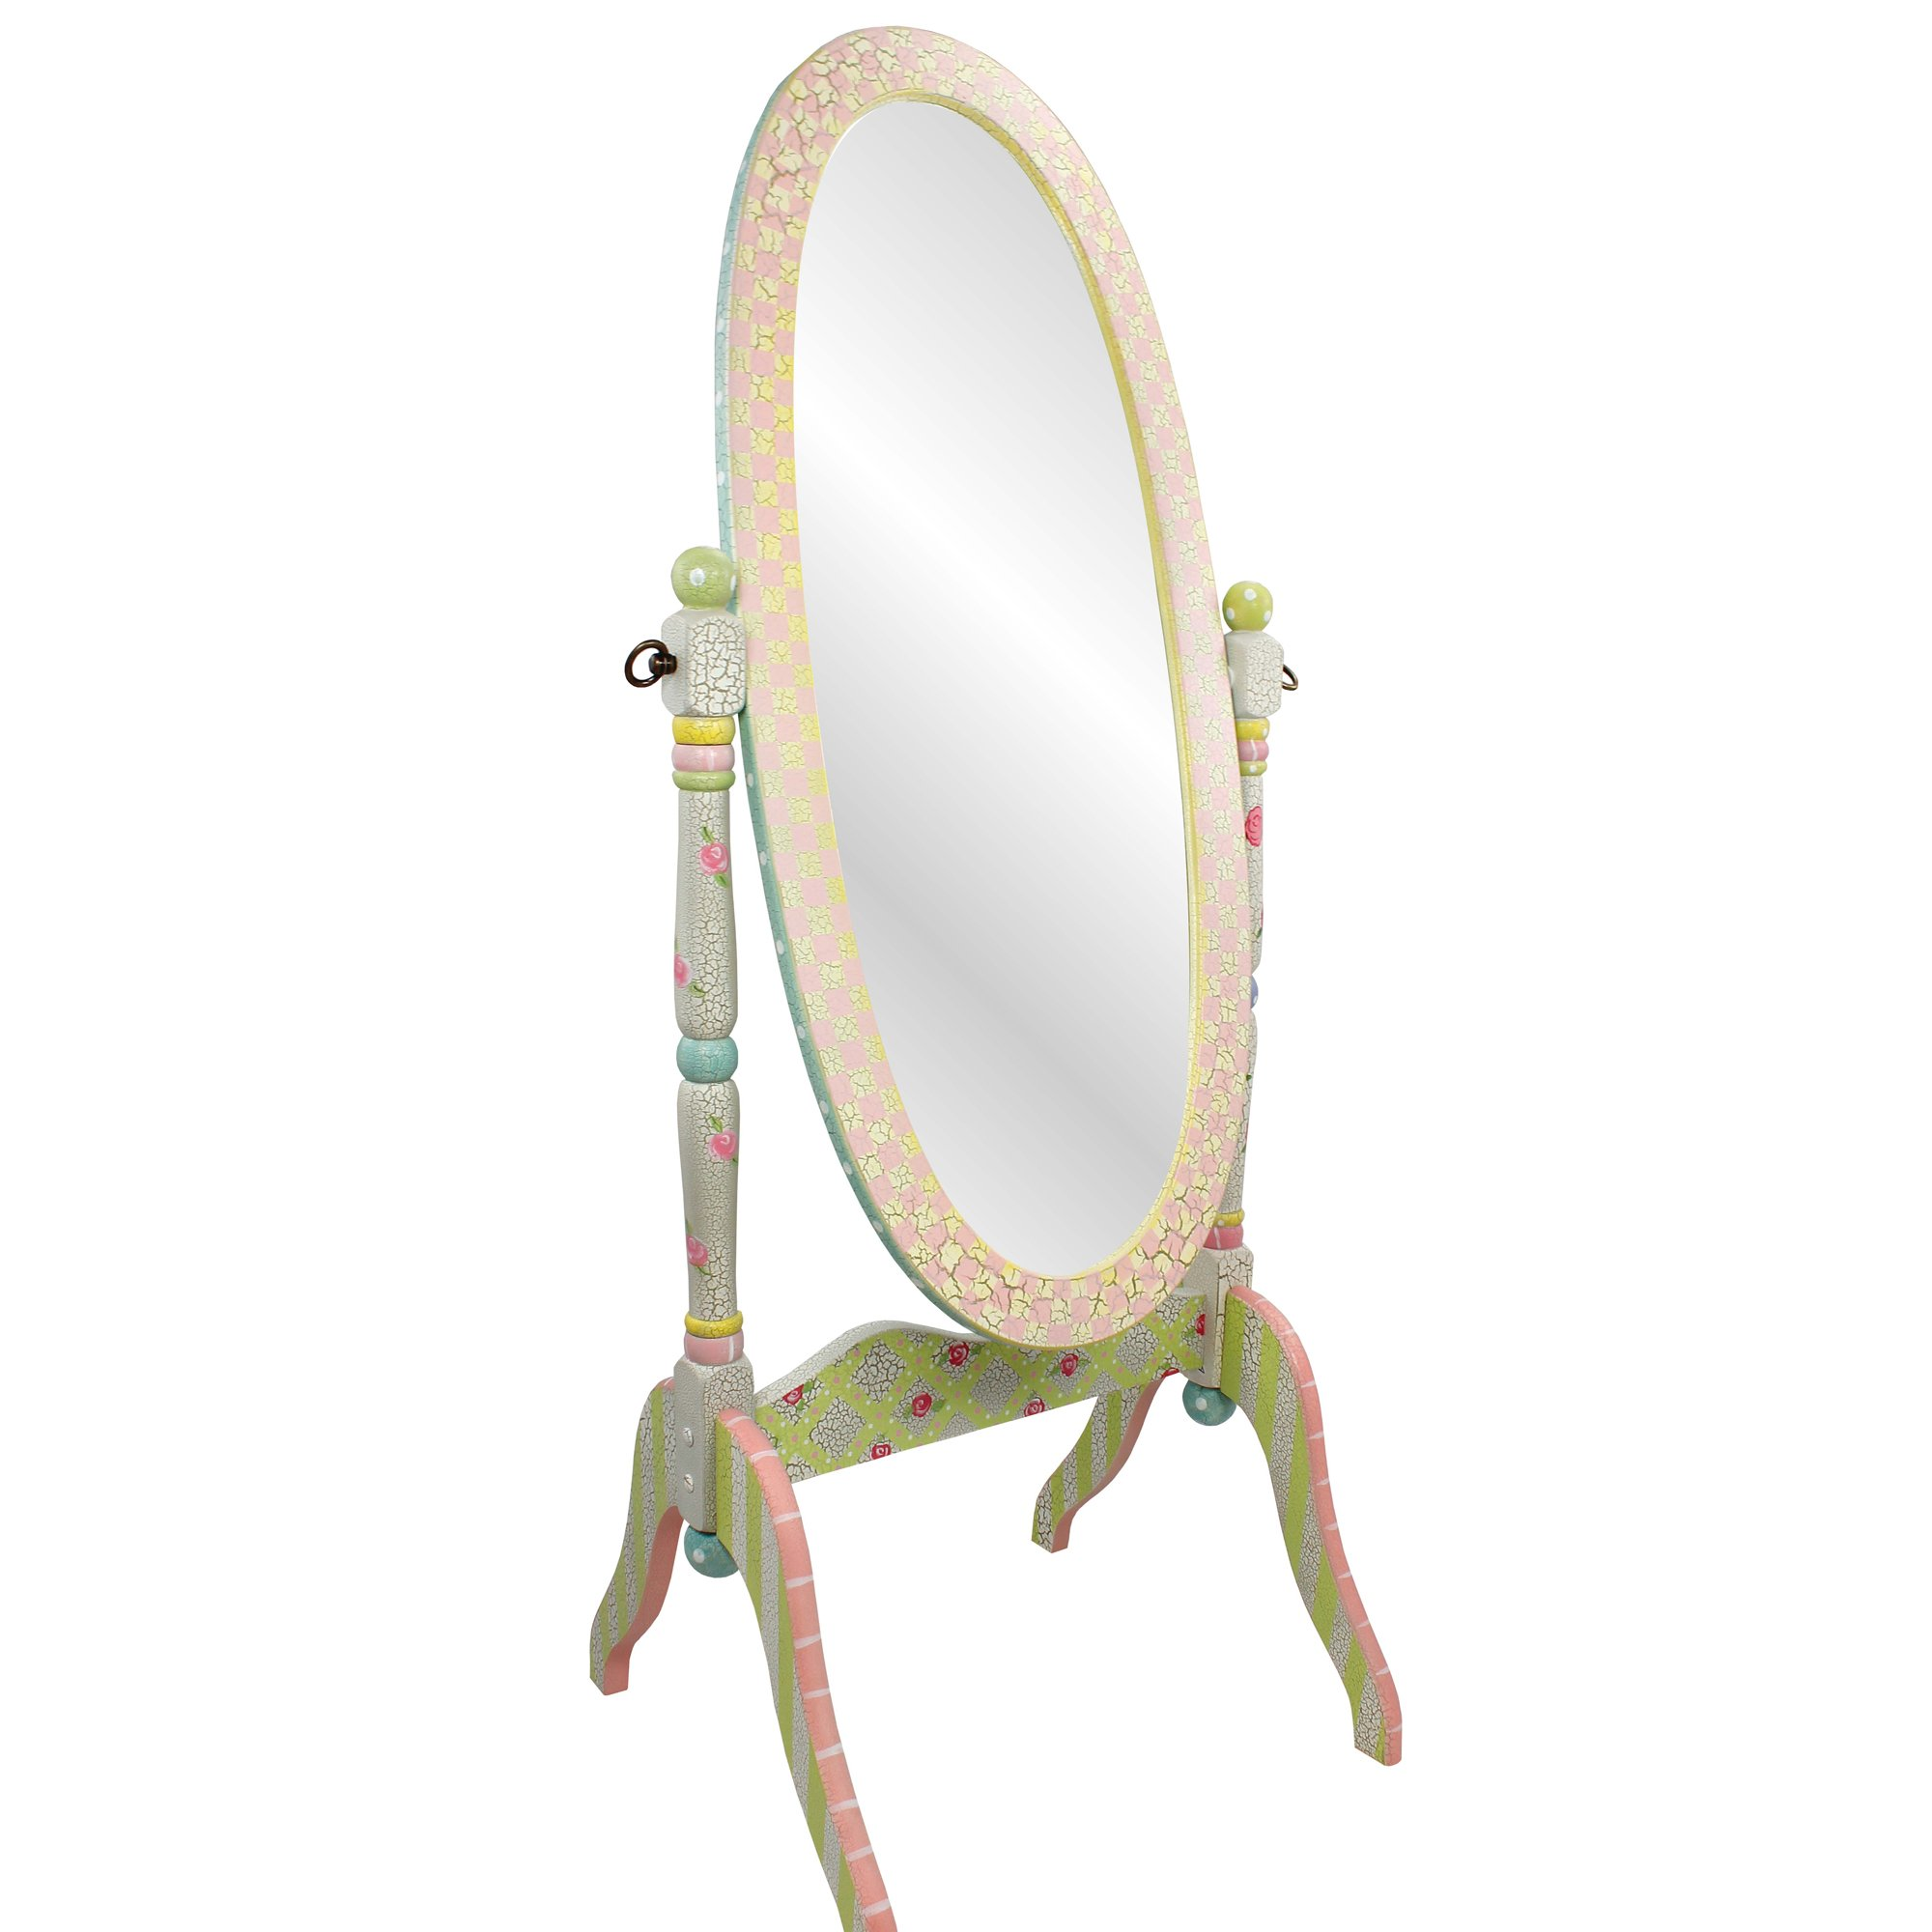 Fantasy Fields - Crackled Rose Thematic Kids Wooden Standing Mirror for Girls | Imagination Inspiring Hand Crafted & Hand Painted Details   Non-Toxic, Lead Free Water-based Paint